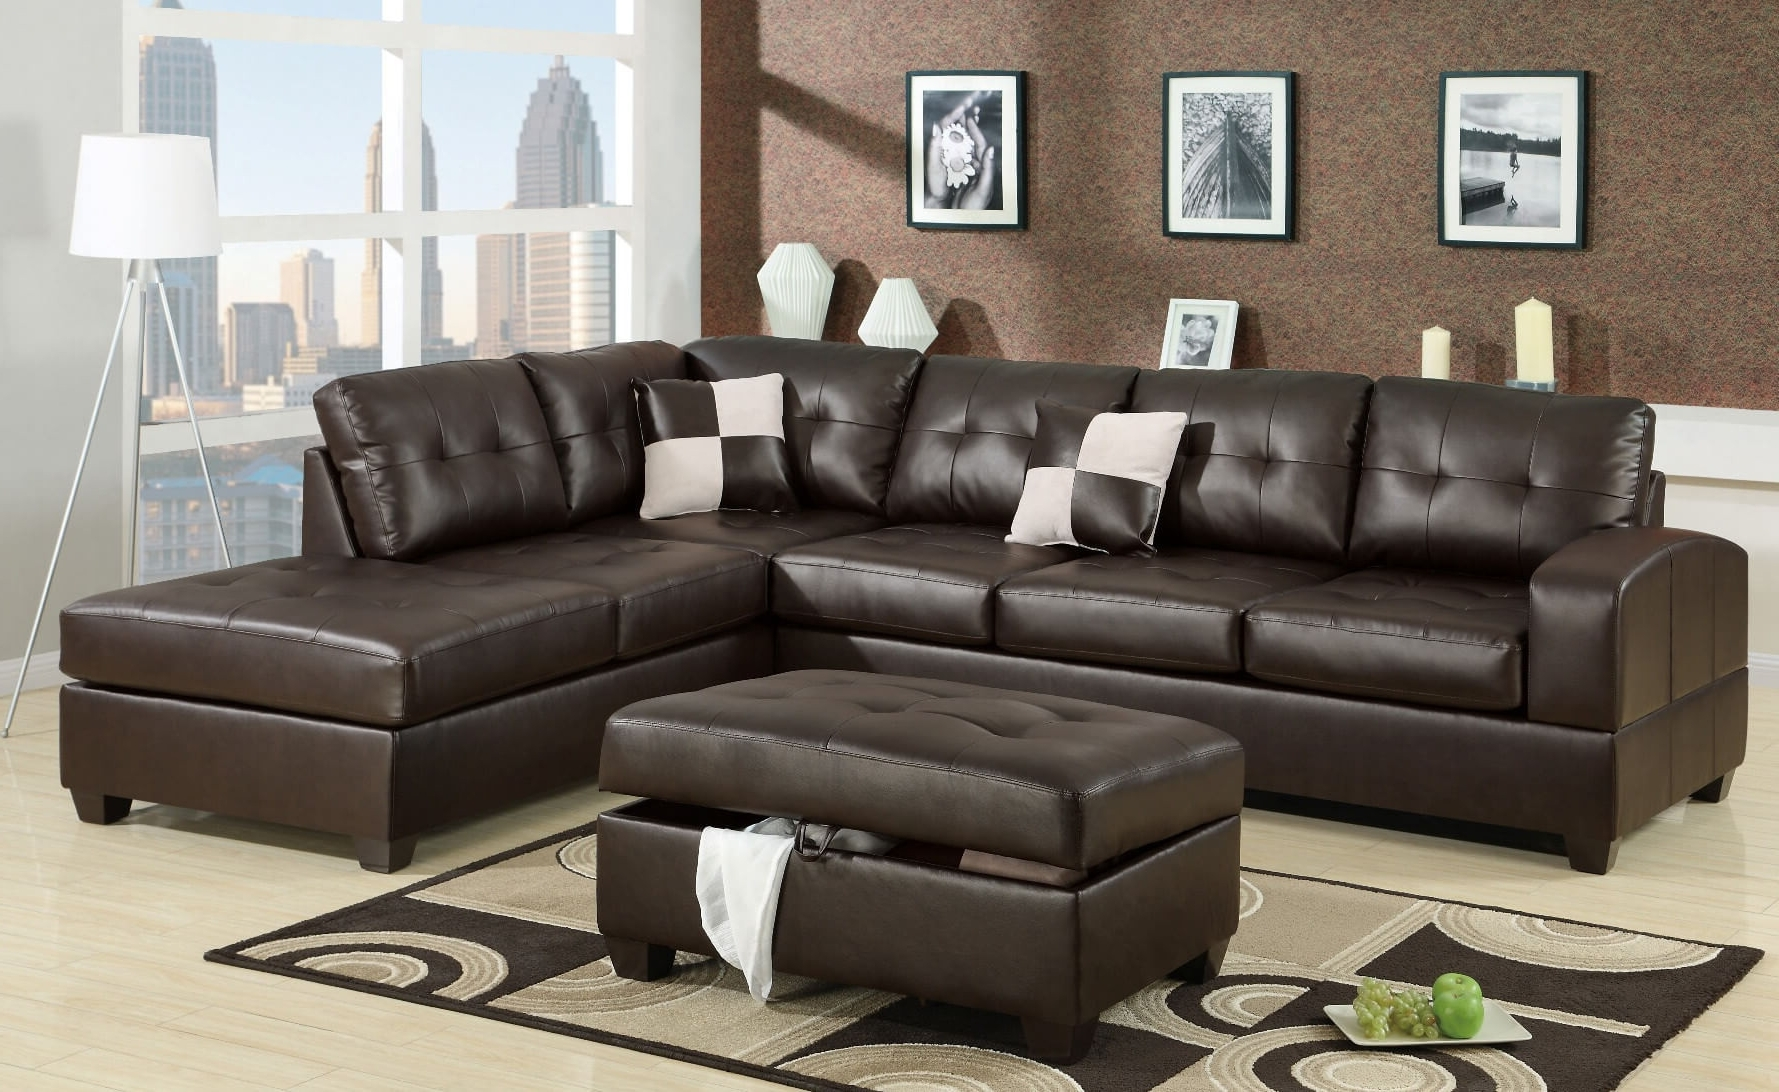 Furniture : Awesome Cheap Sectional Sofas Under 300 Best Of Intended For Most Recently Released Sectional Sofas Under (View 14 of 20)